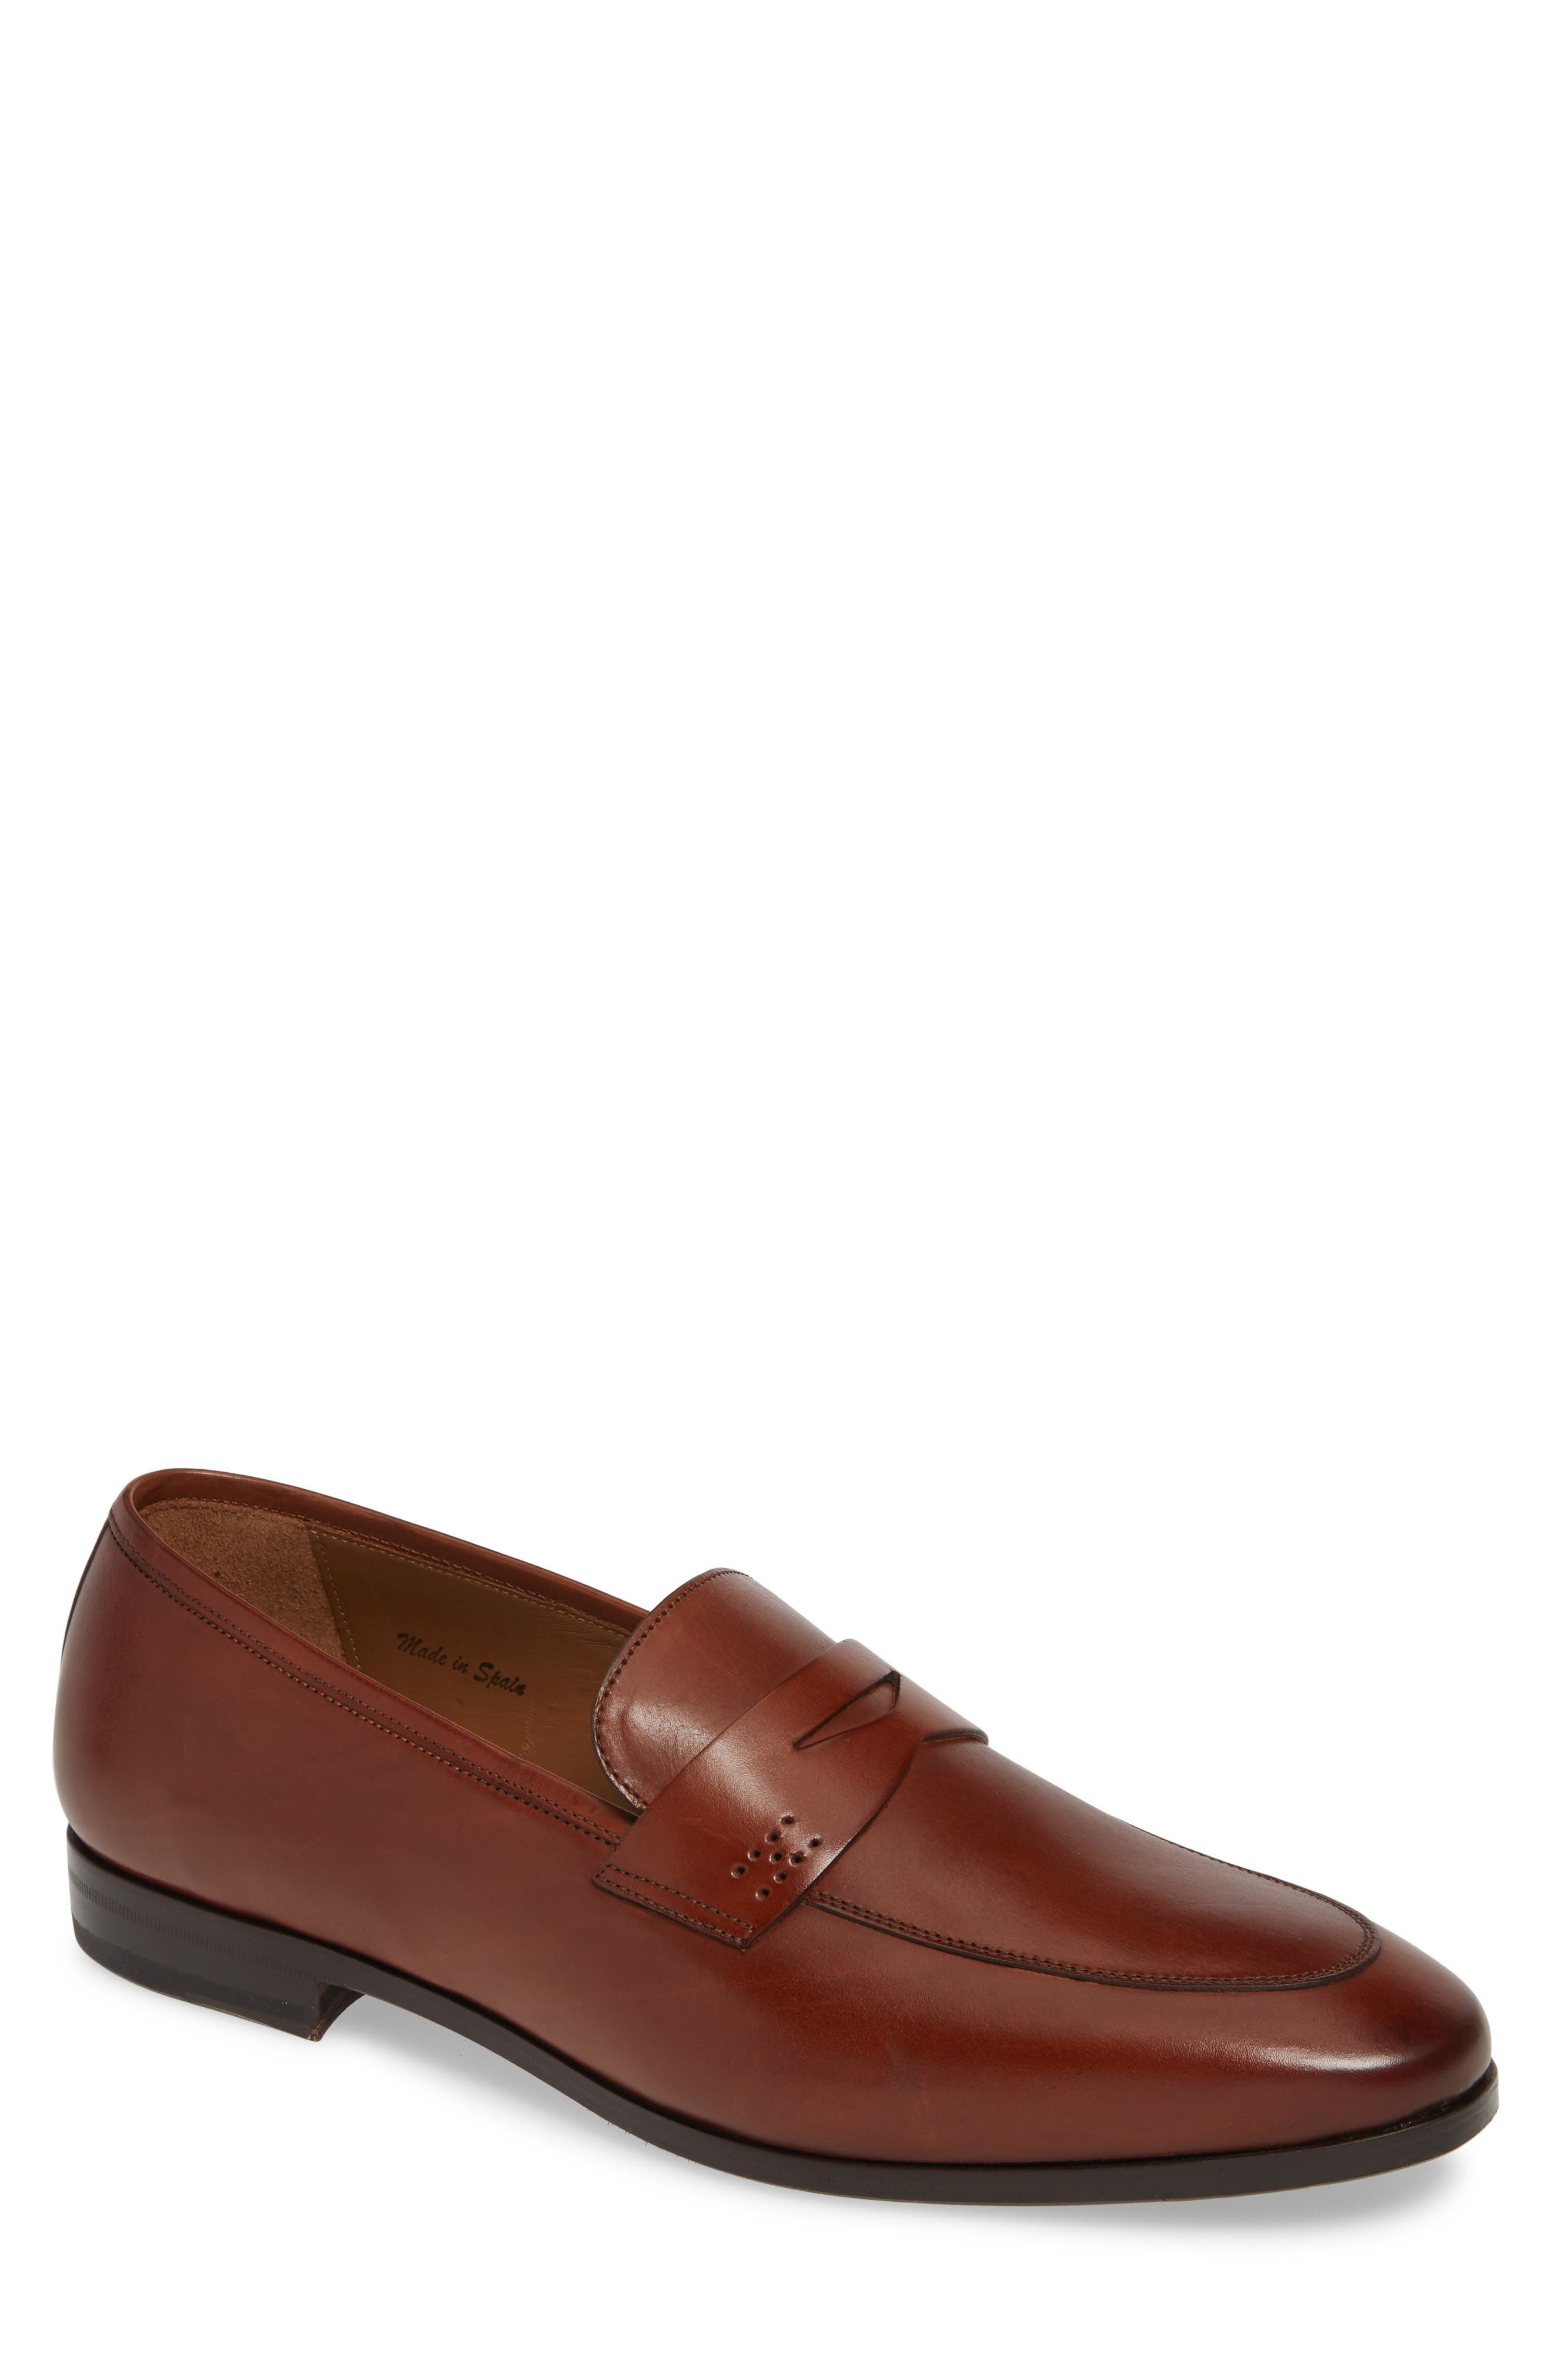 Mezlan Fabrizi Penny Loafer, Brown